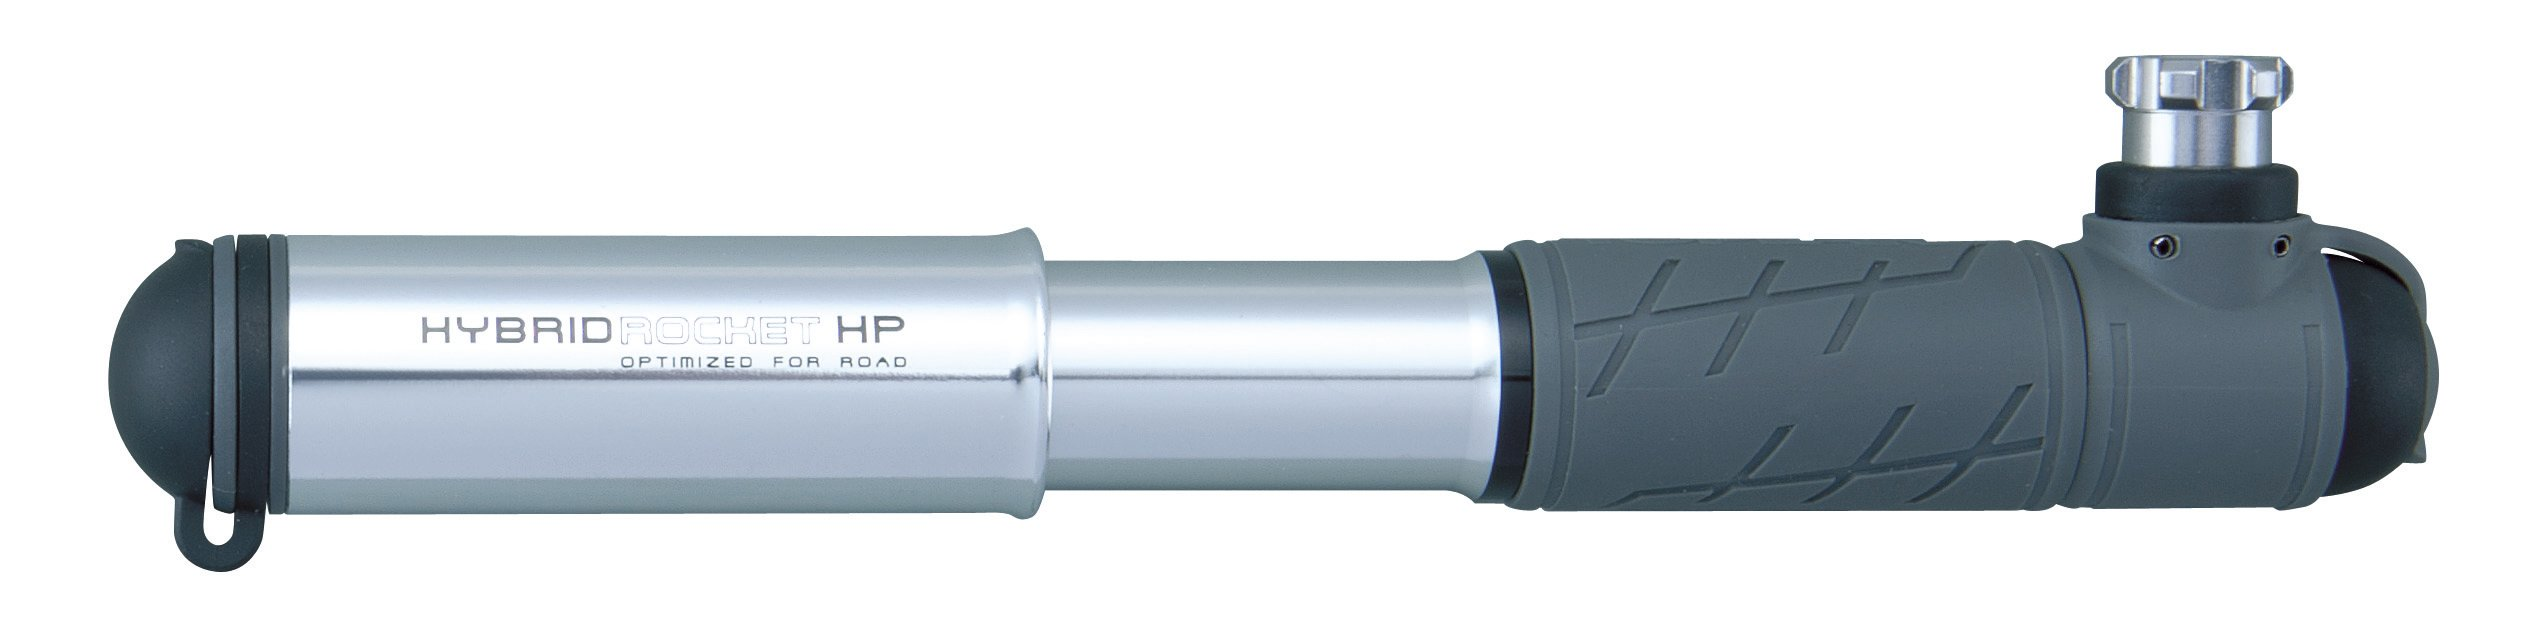 Topeak Hybrid Rocket HP Mini Pump without Cartridge(Silver/Black, 7.5 x 1.5 x 0.9-Inch)